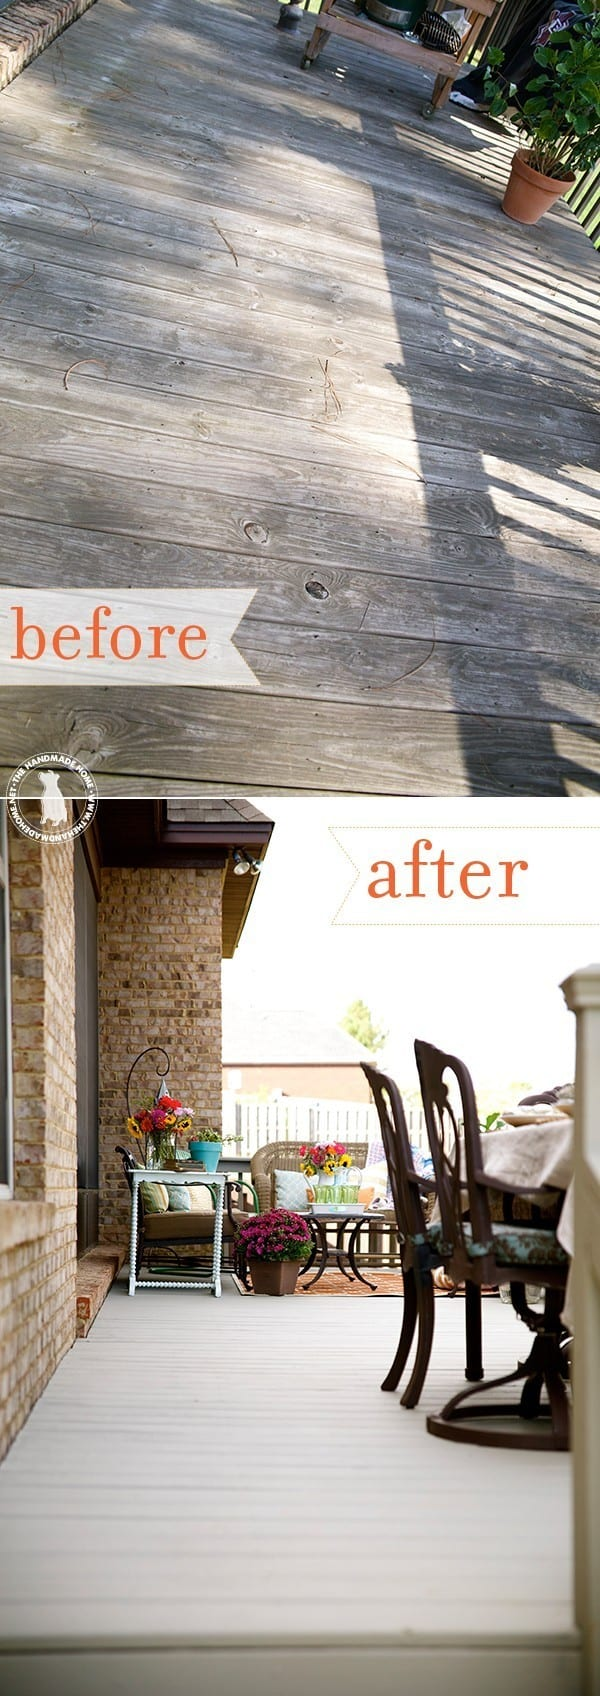 porch_revamp_before_and_after